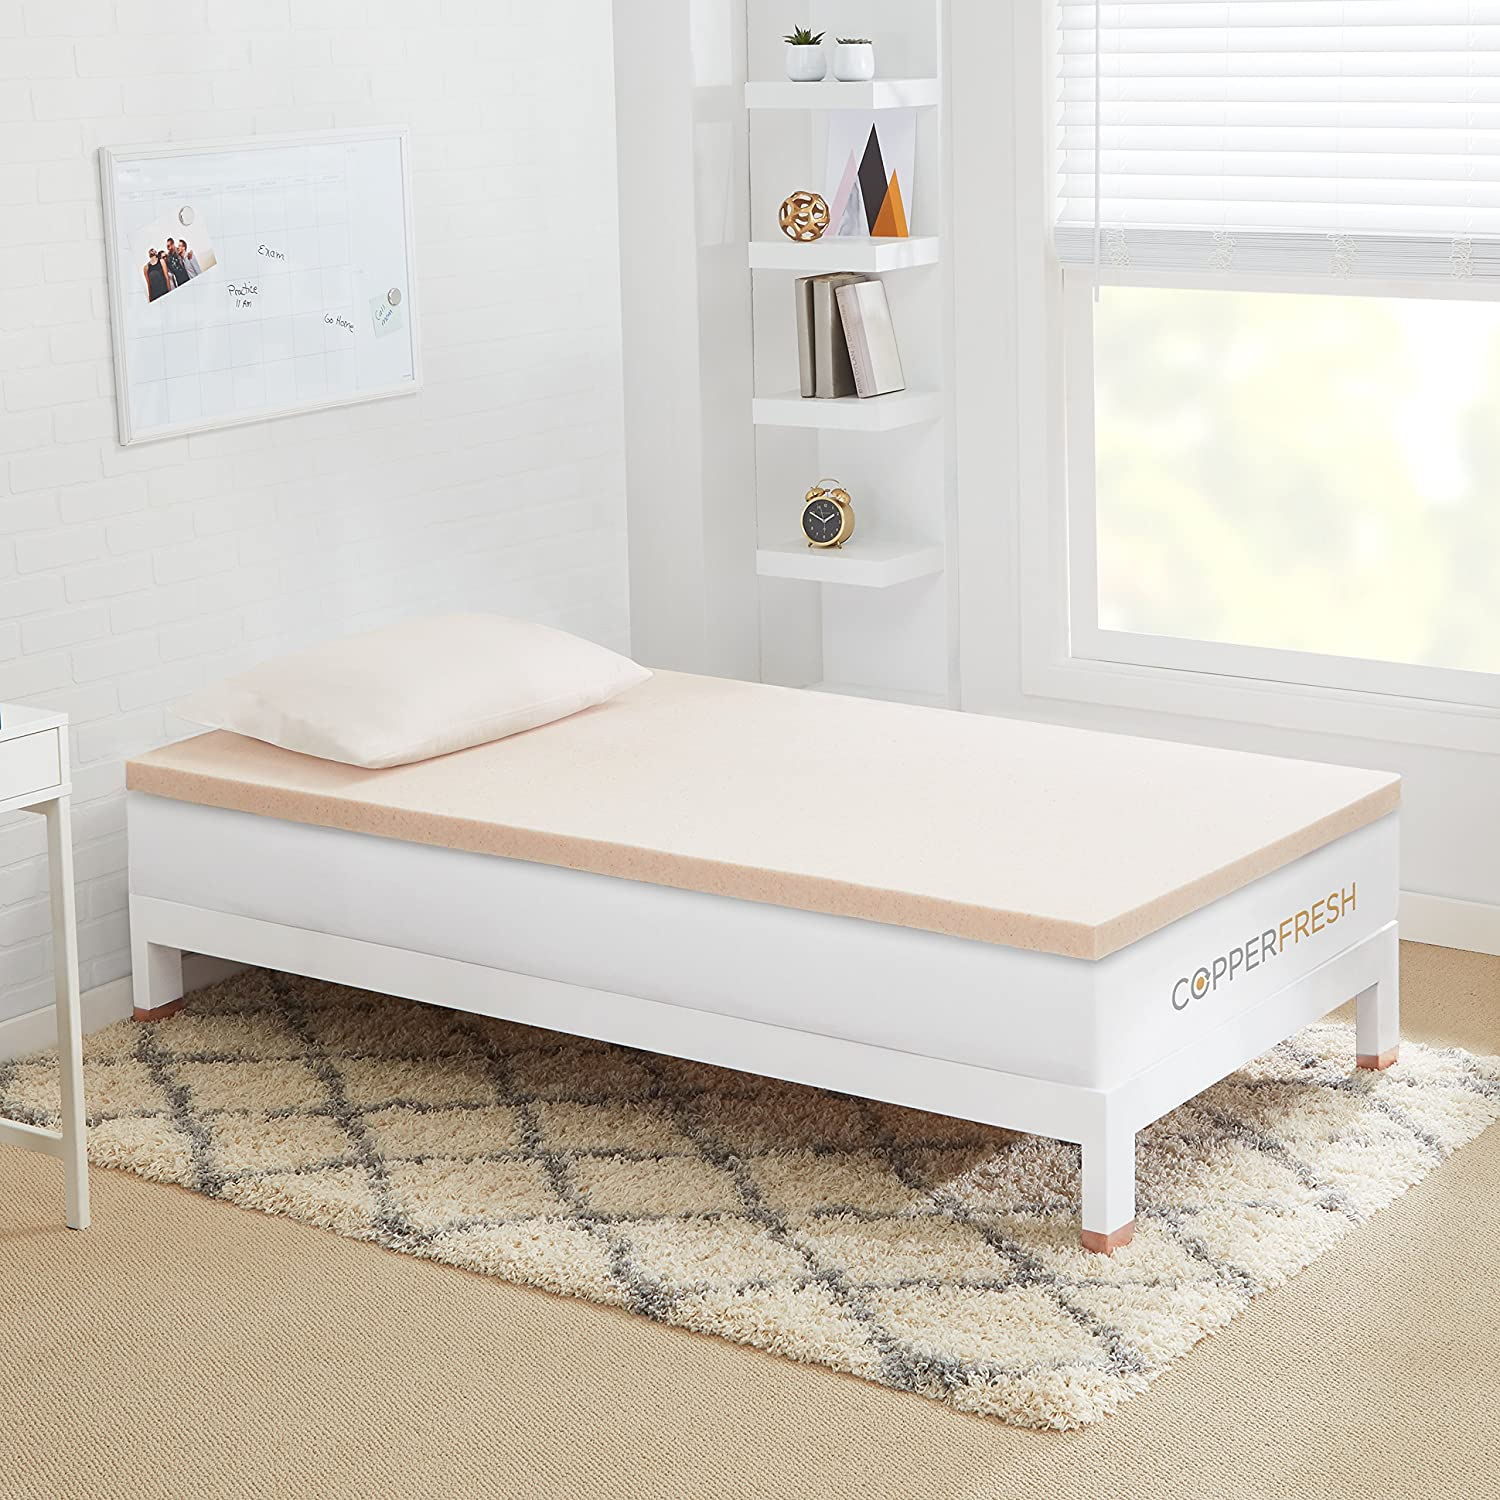 Amazon.com: CopperFresh Gel Memory Foam Mattress Topper by Sleep Studio, Naturally Antimicrobial and Cool, Made in The USA – 2-Inches, Full: Kitchen & ...